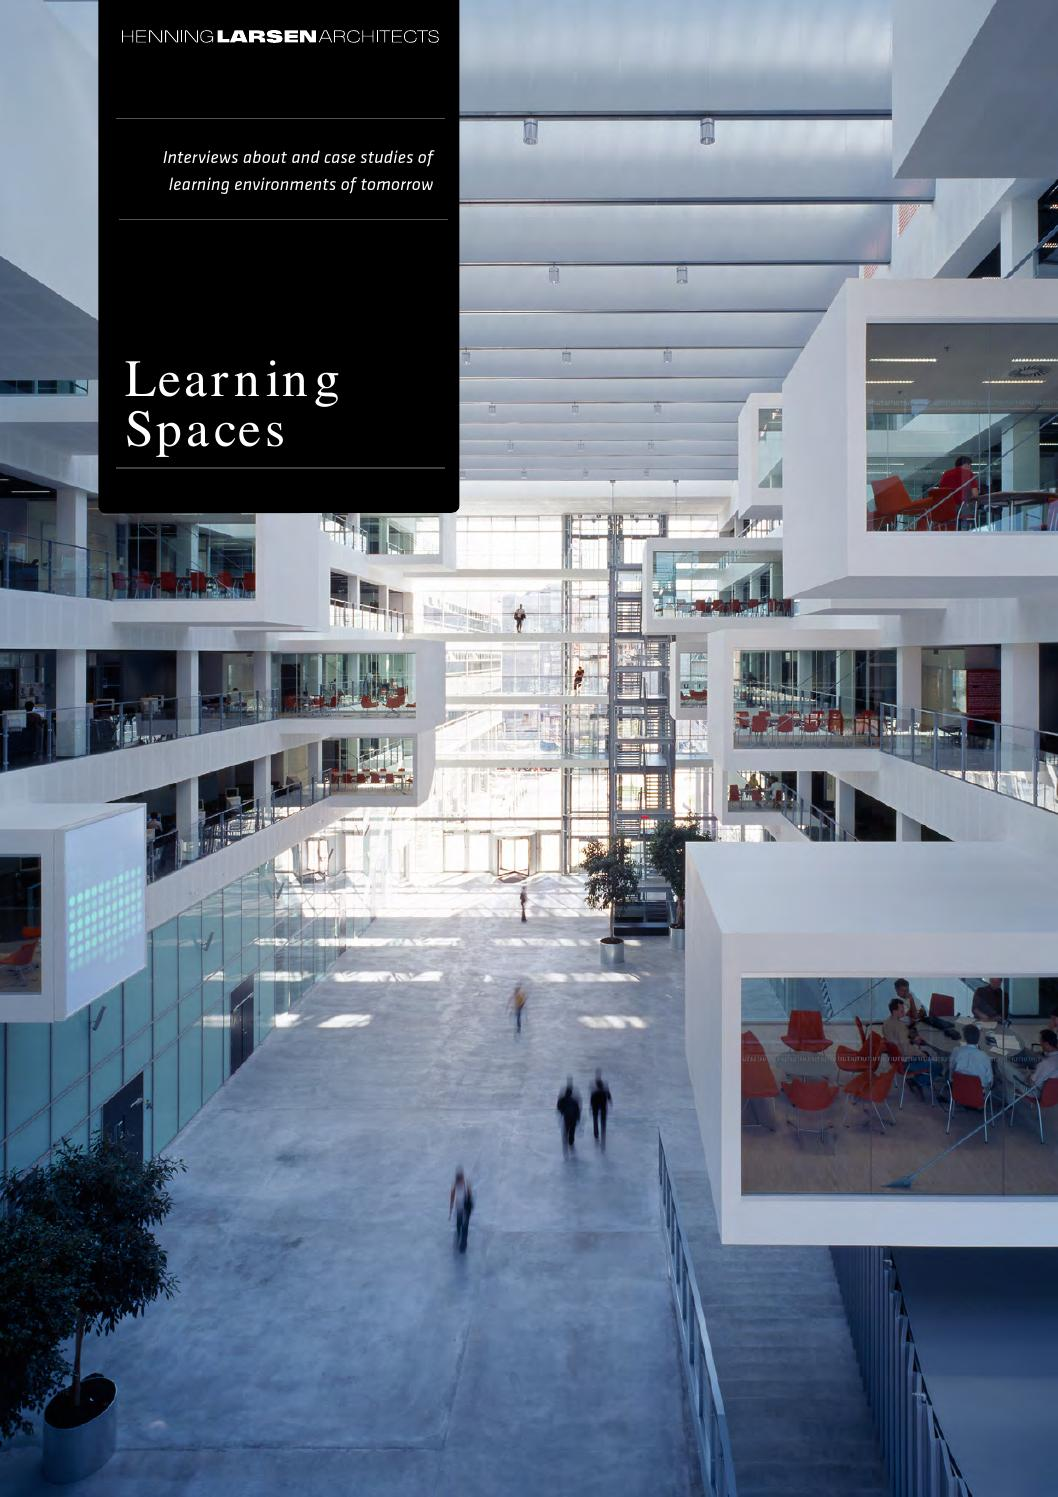 Learning Spaces by Henning Larsen Architects by Henning